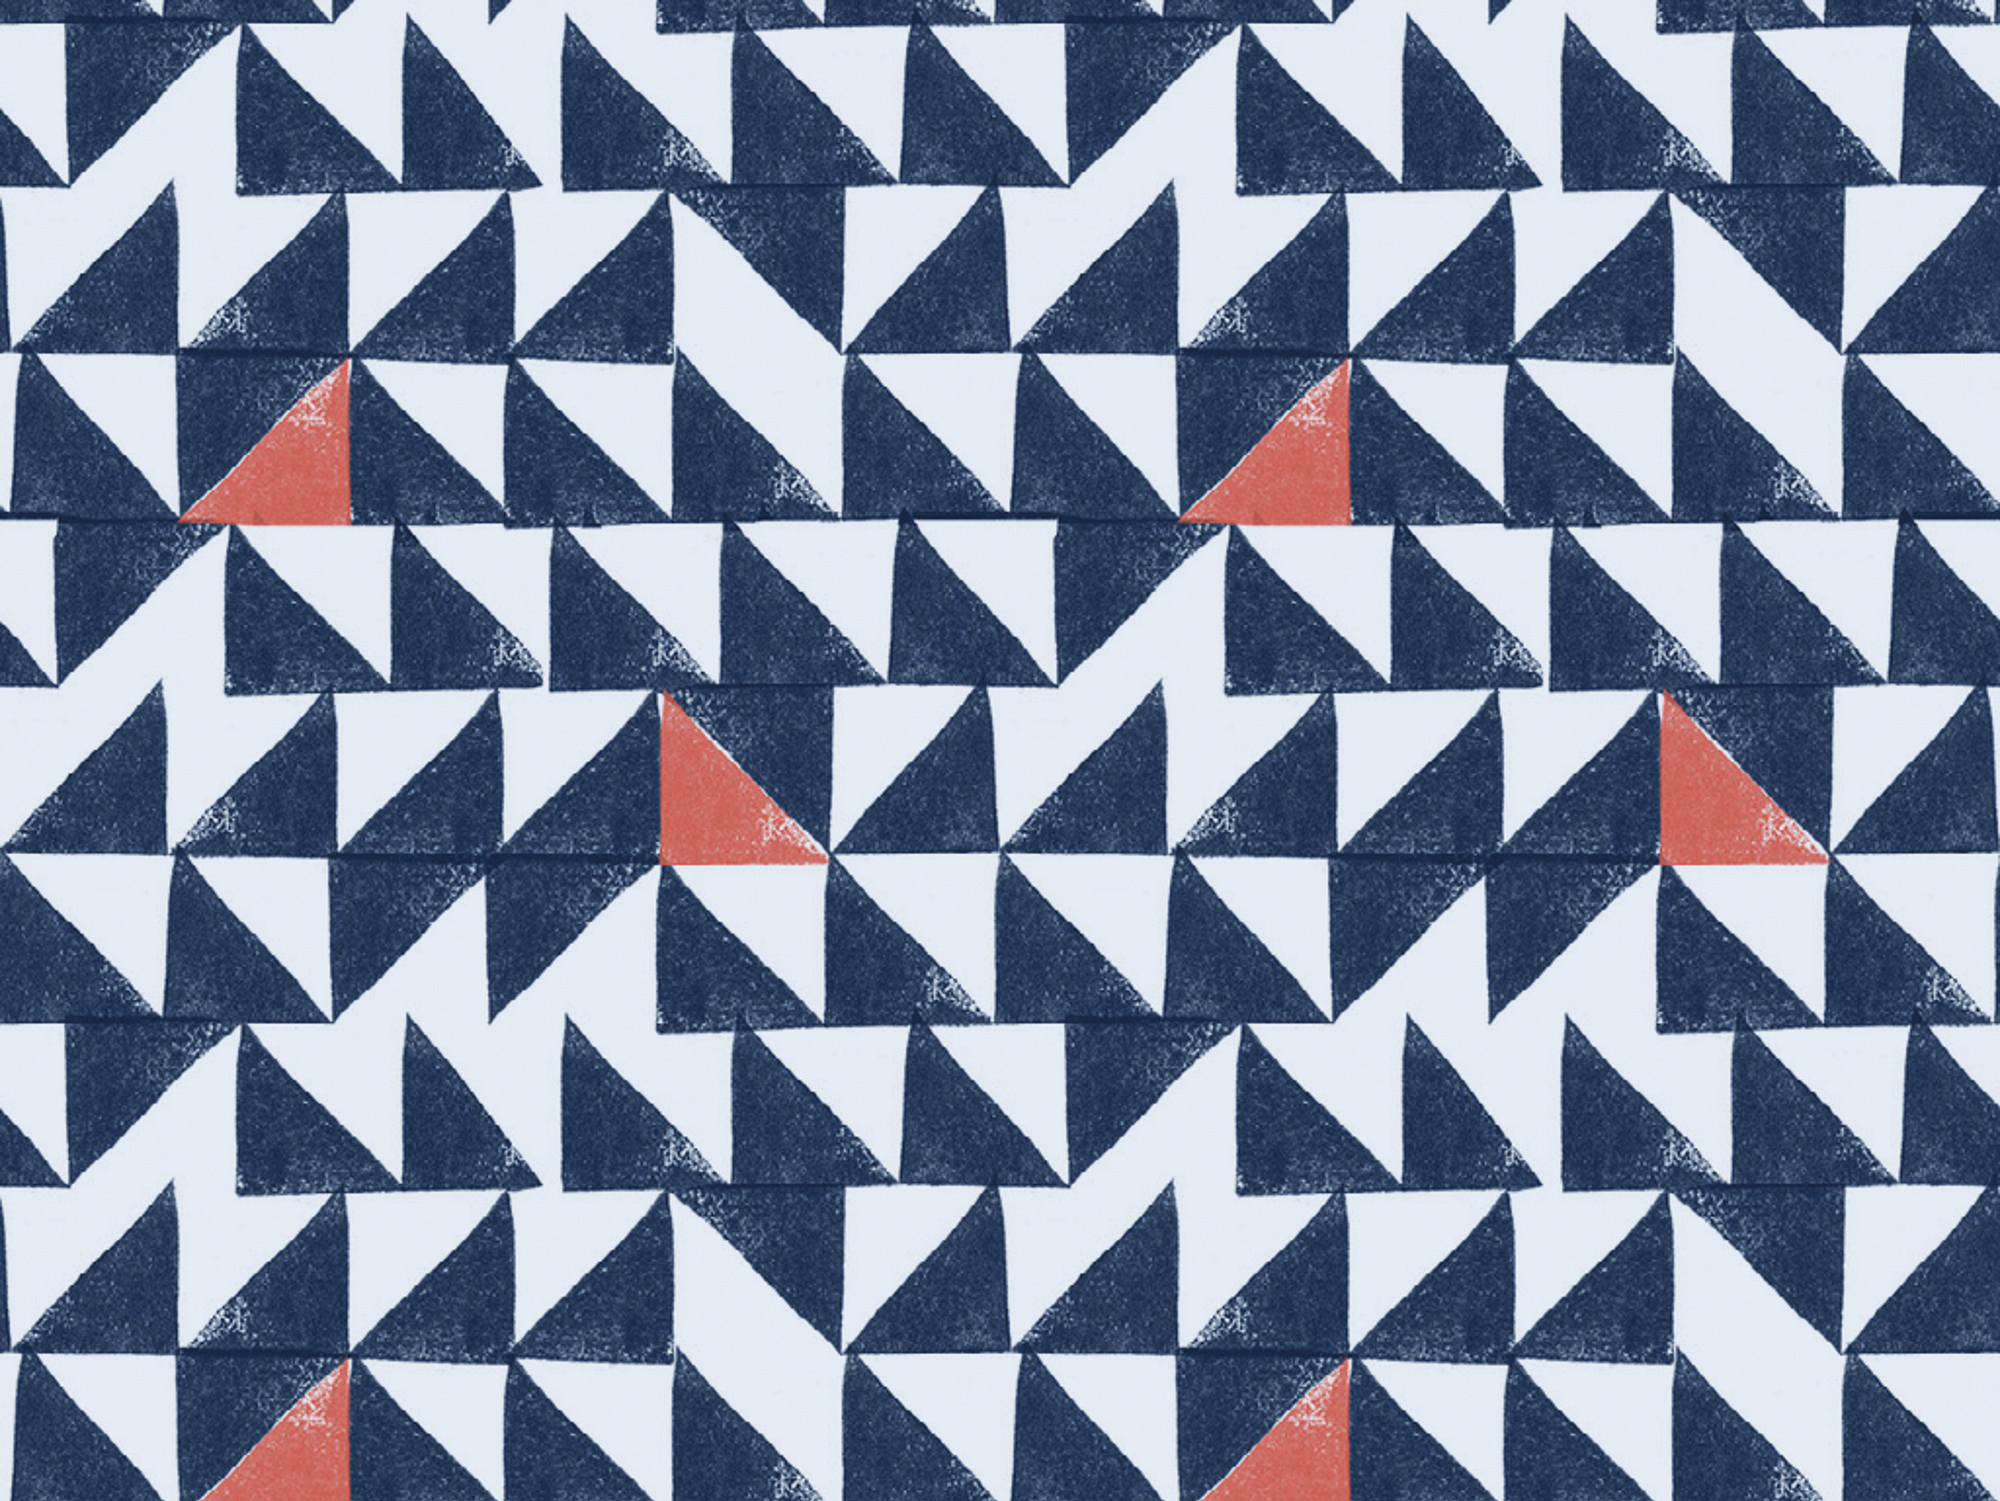 AmyAna Cover art, white, dark blue, and red-orange triangles in a random pattern.